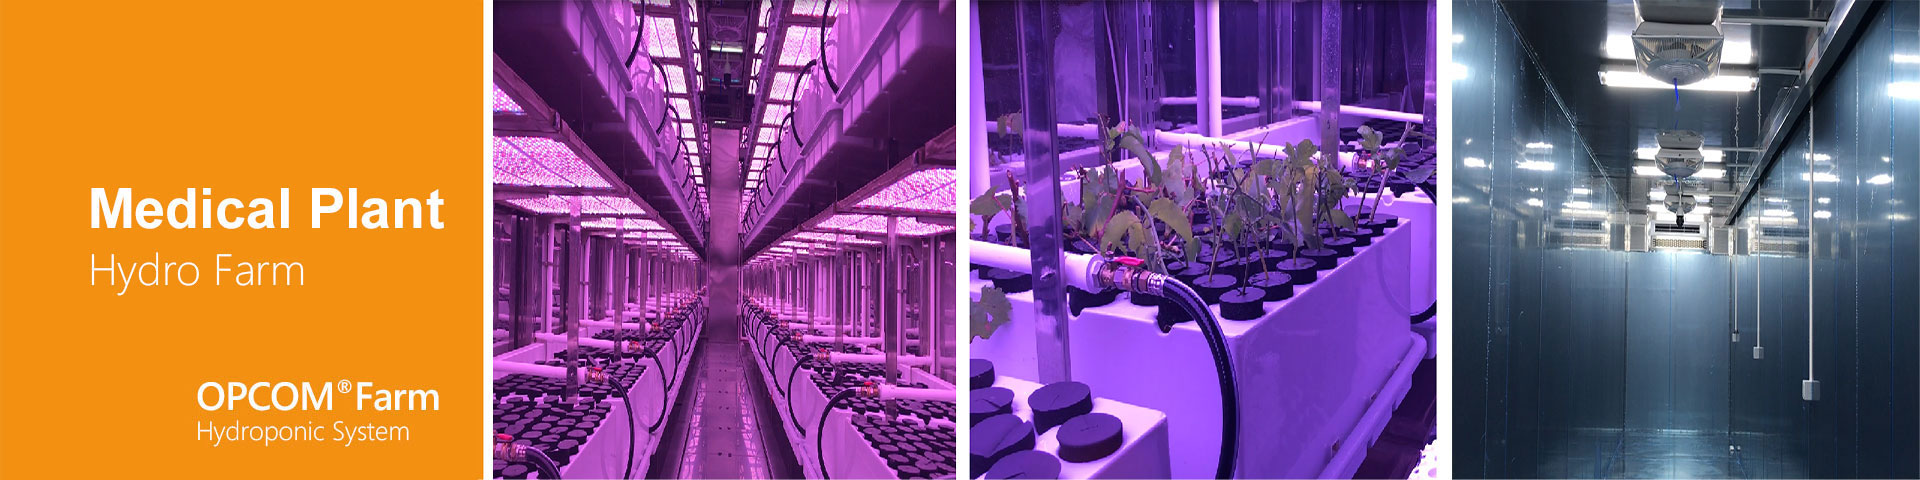 Application for Business-Hydro Farm, Hydroponic System